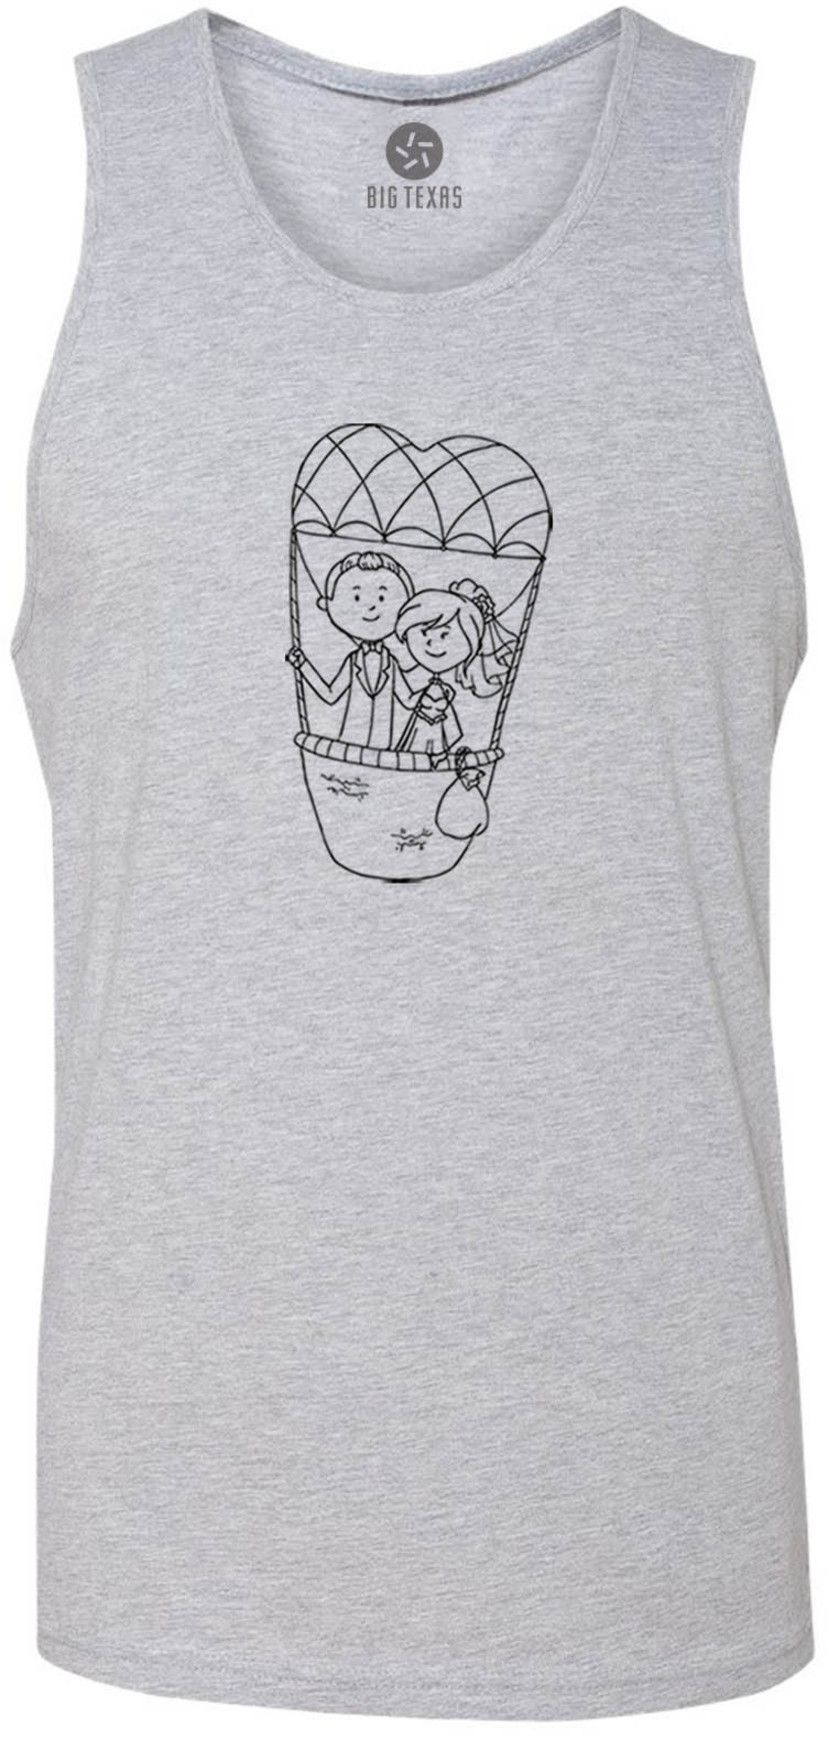 Up in the Clouds (Black) Tank-Top T-Shirt